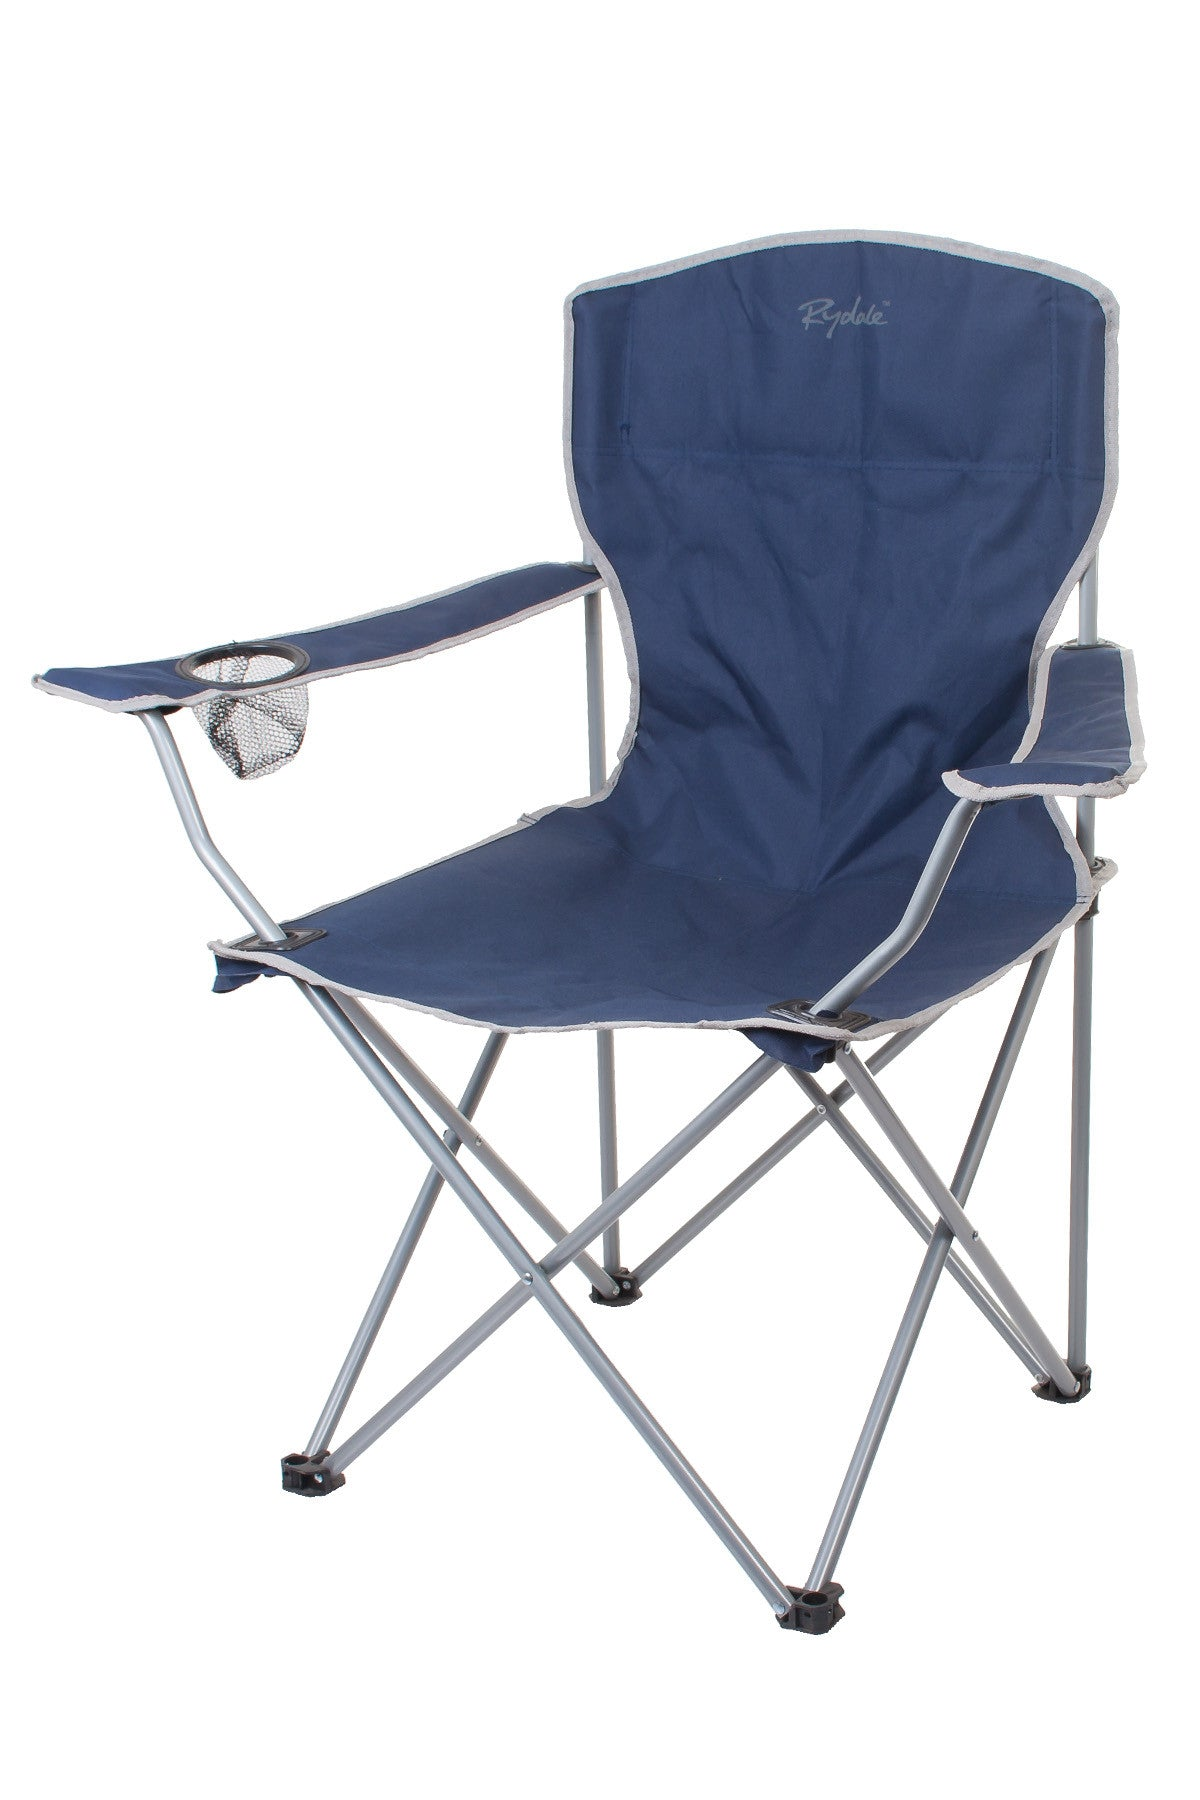 Rydale Folding Camping Chair